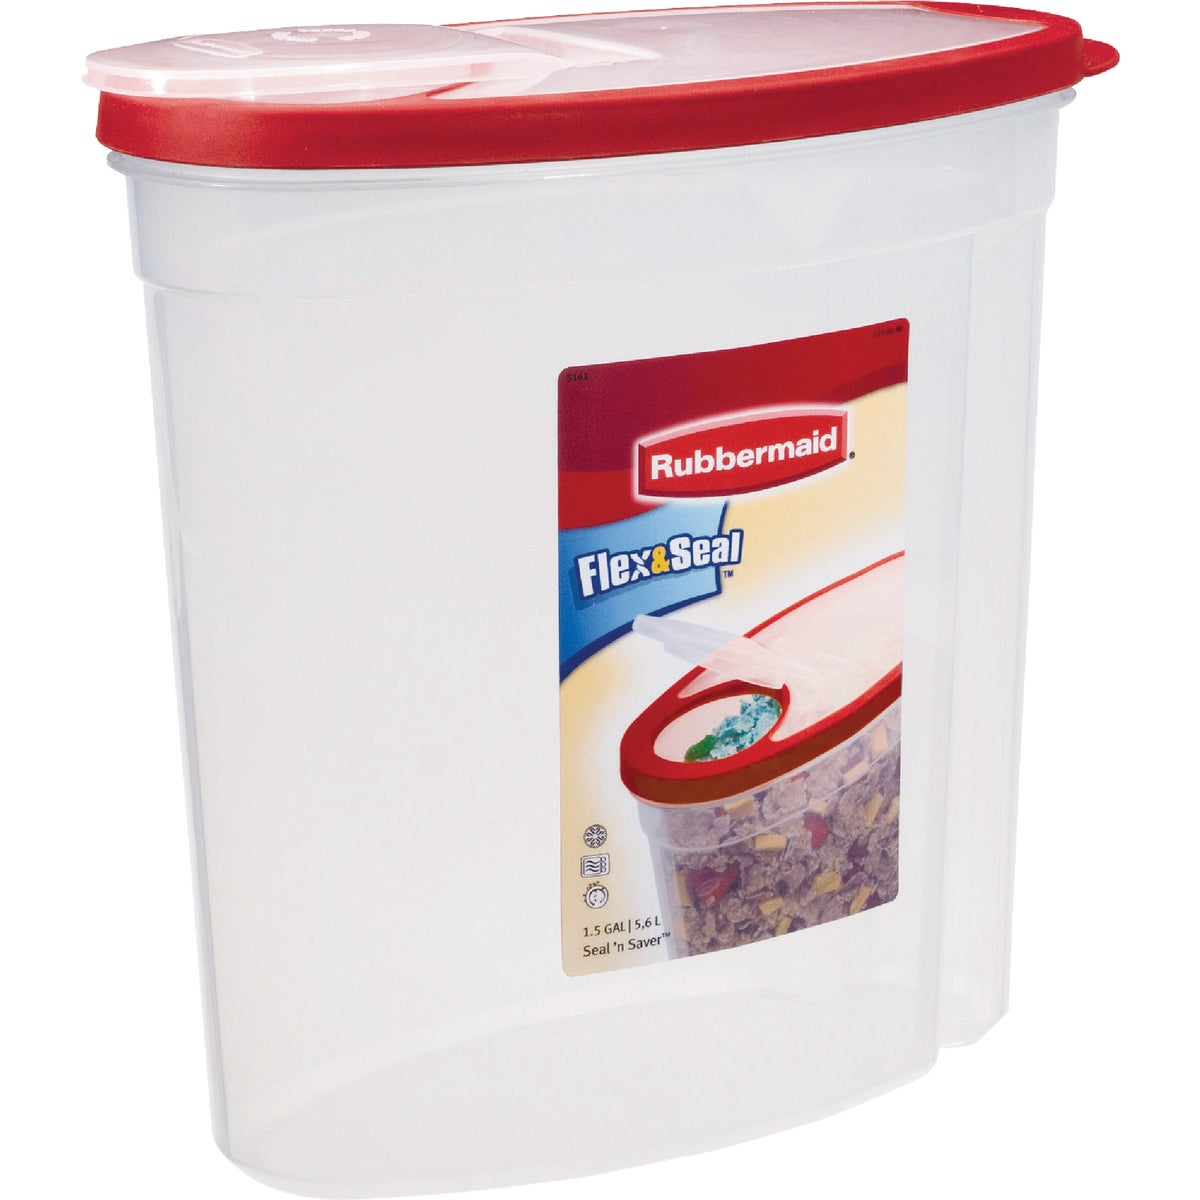 1.5GAL CEREAL CONTAINER - 1777195 by Rubbermaid Home